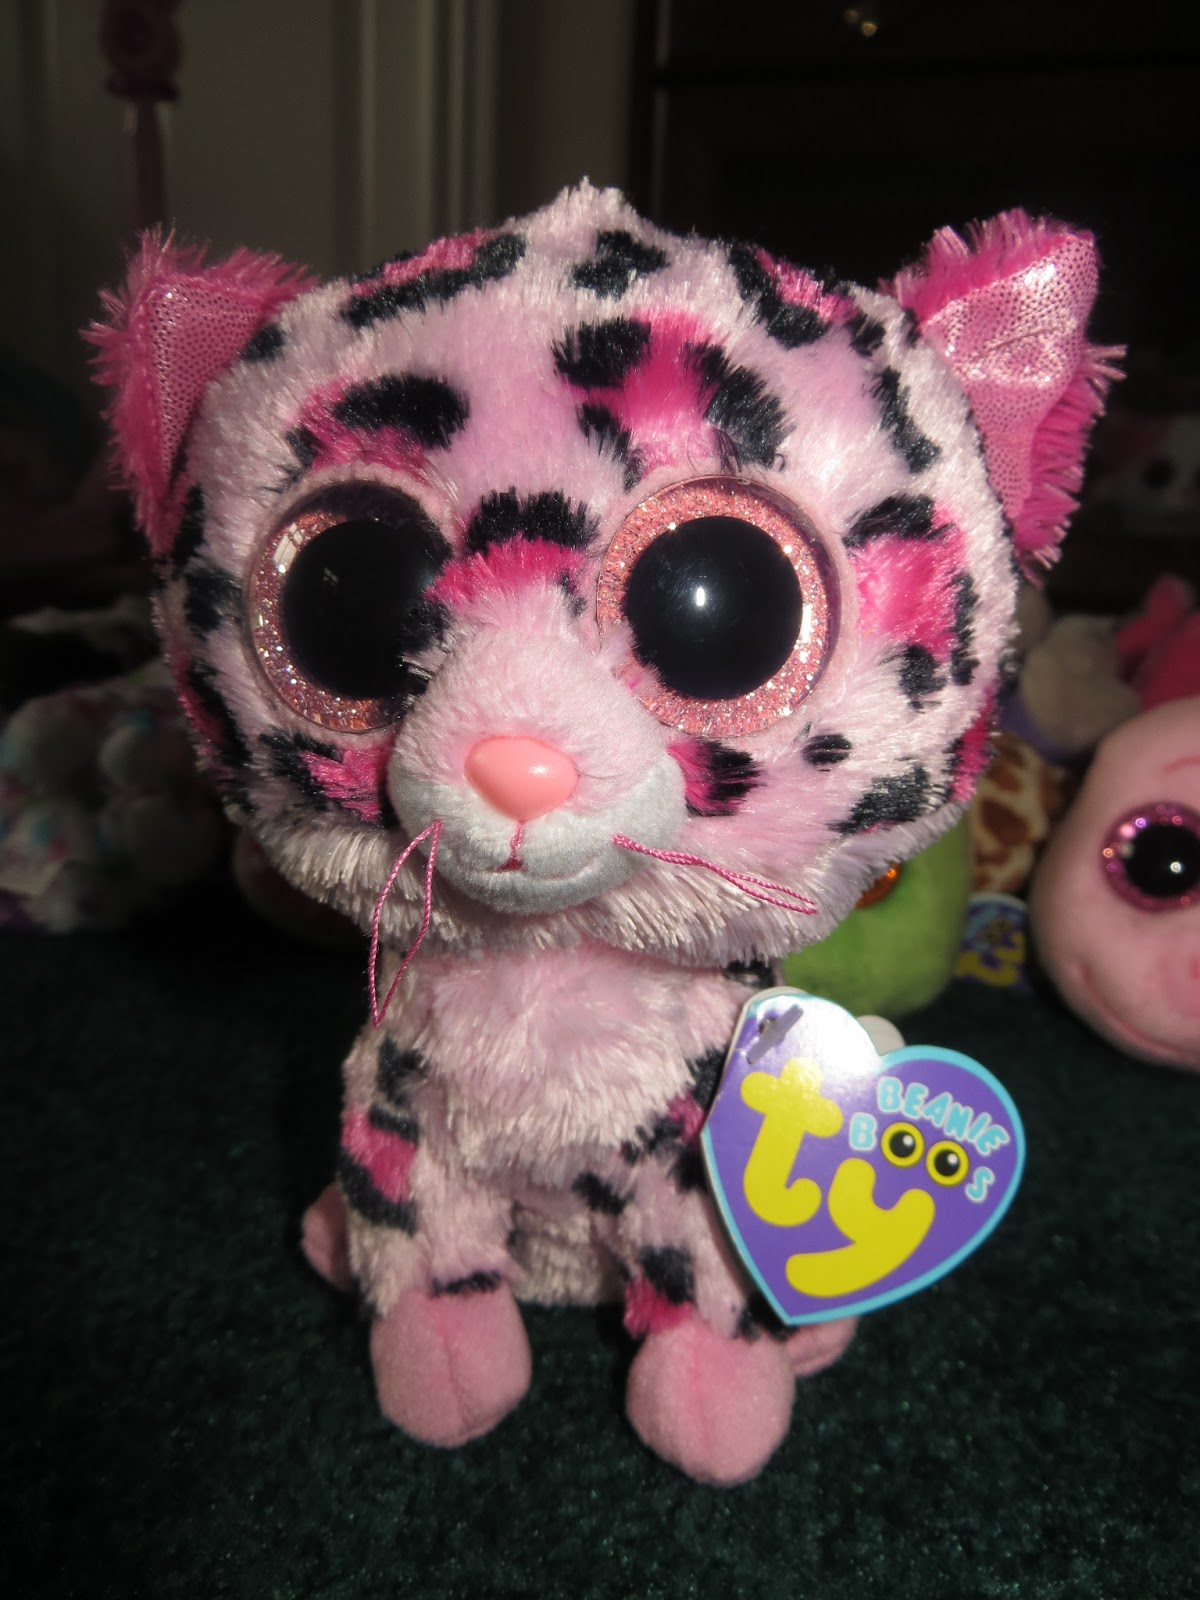 538fbf8819c I would like to take this opportunity to greet my hubby HAPPY BIRTHDAY  Gummy Bear!   Sharing a special day with a very pretty Beanie Boos GYPSY  (Pink ...